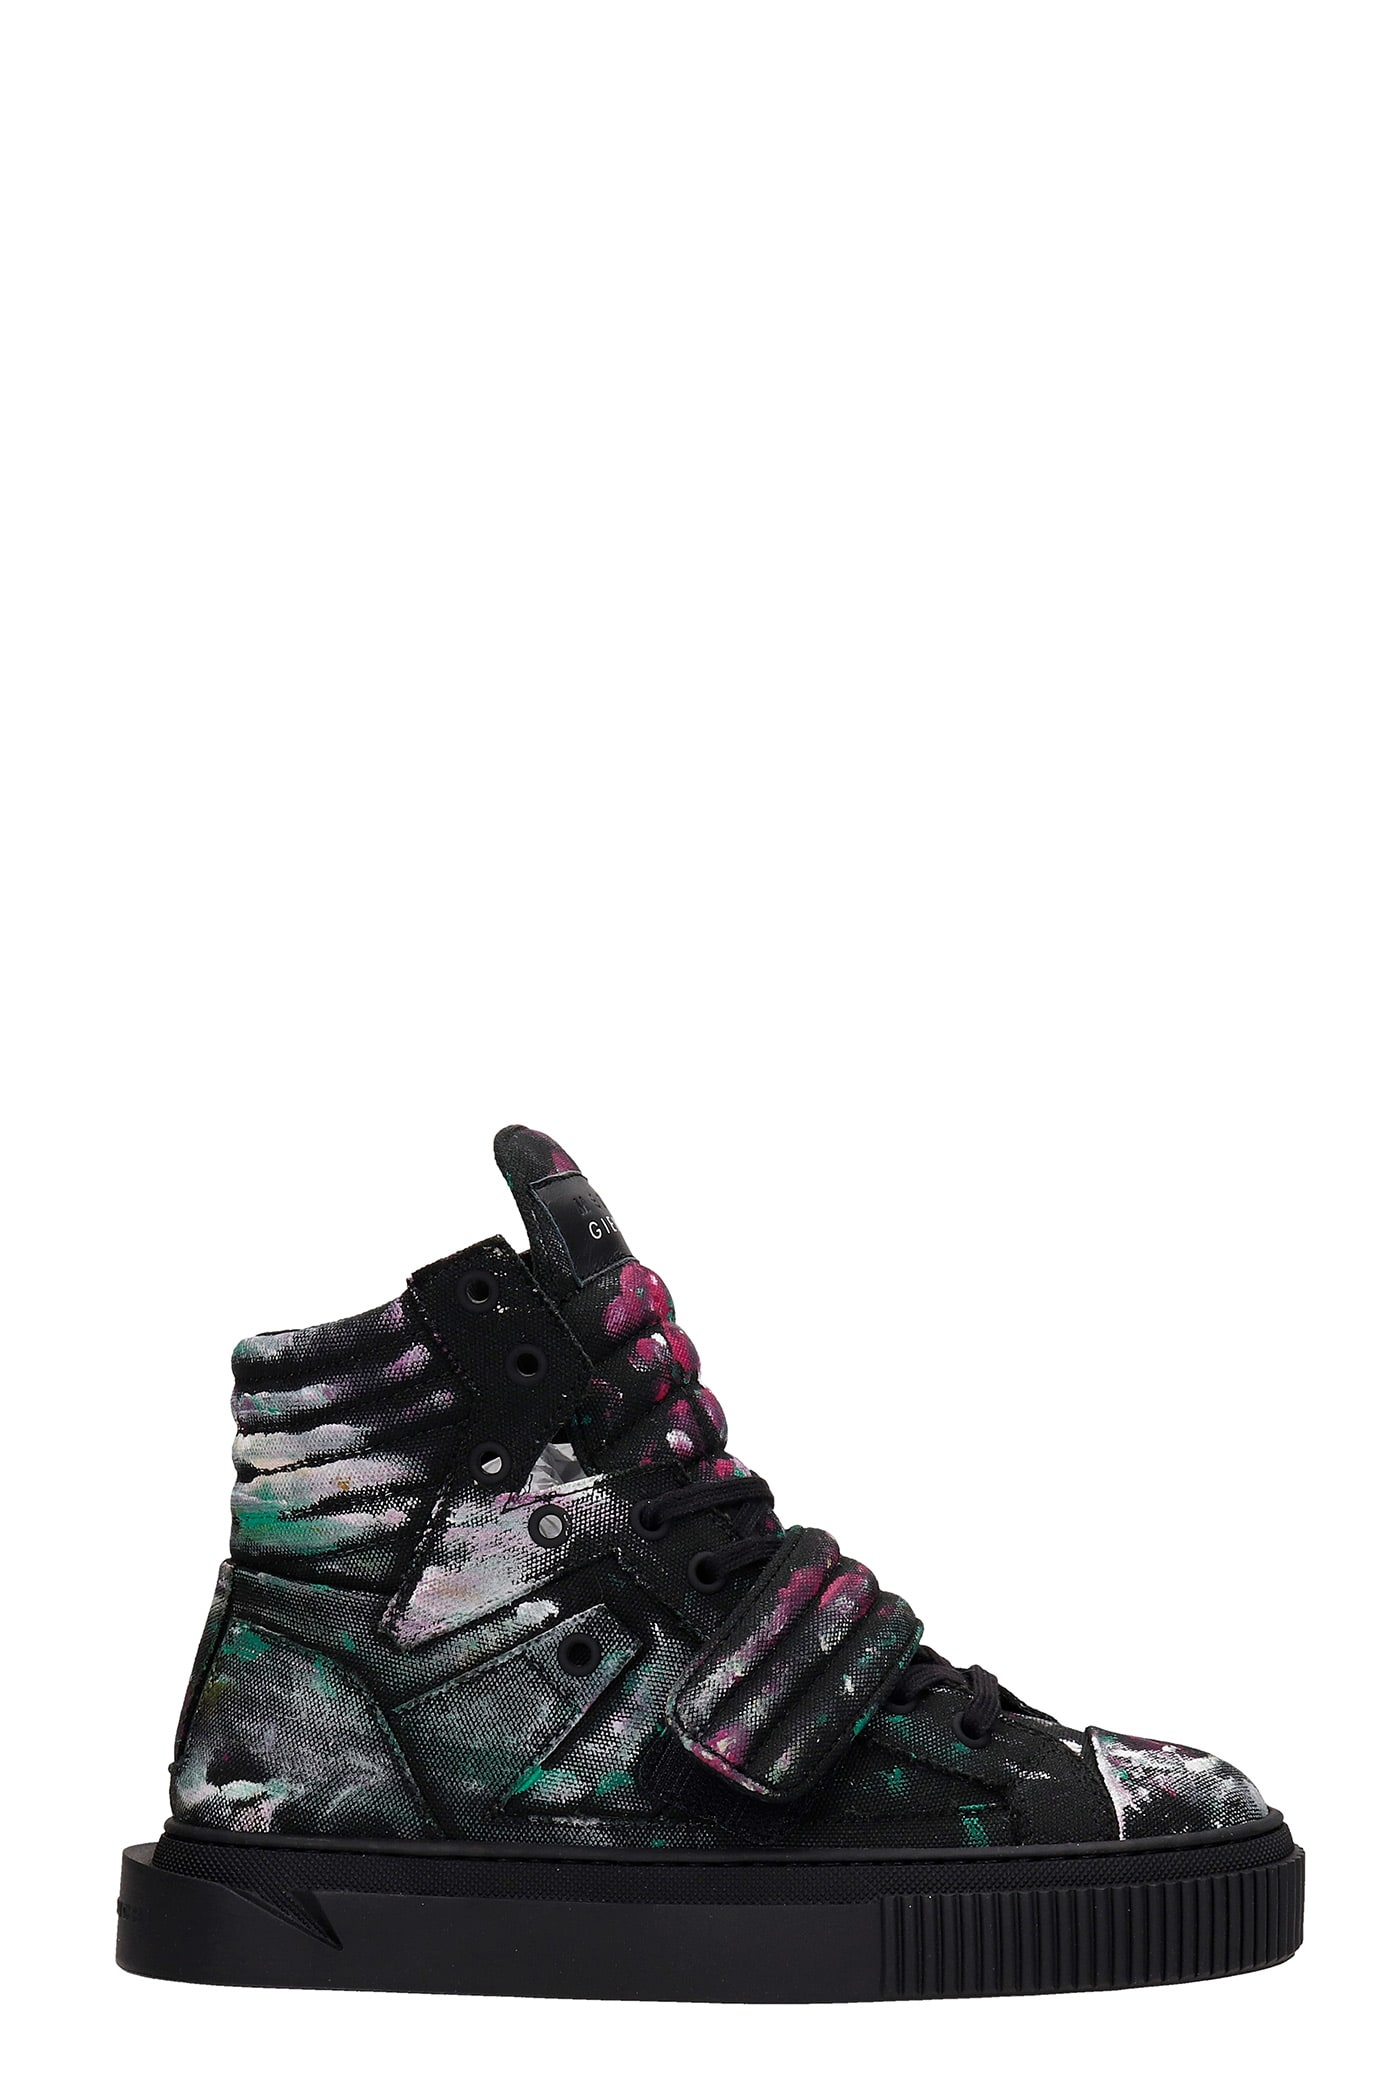 Hypnos Shake Sneakers In Black Canvas